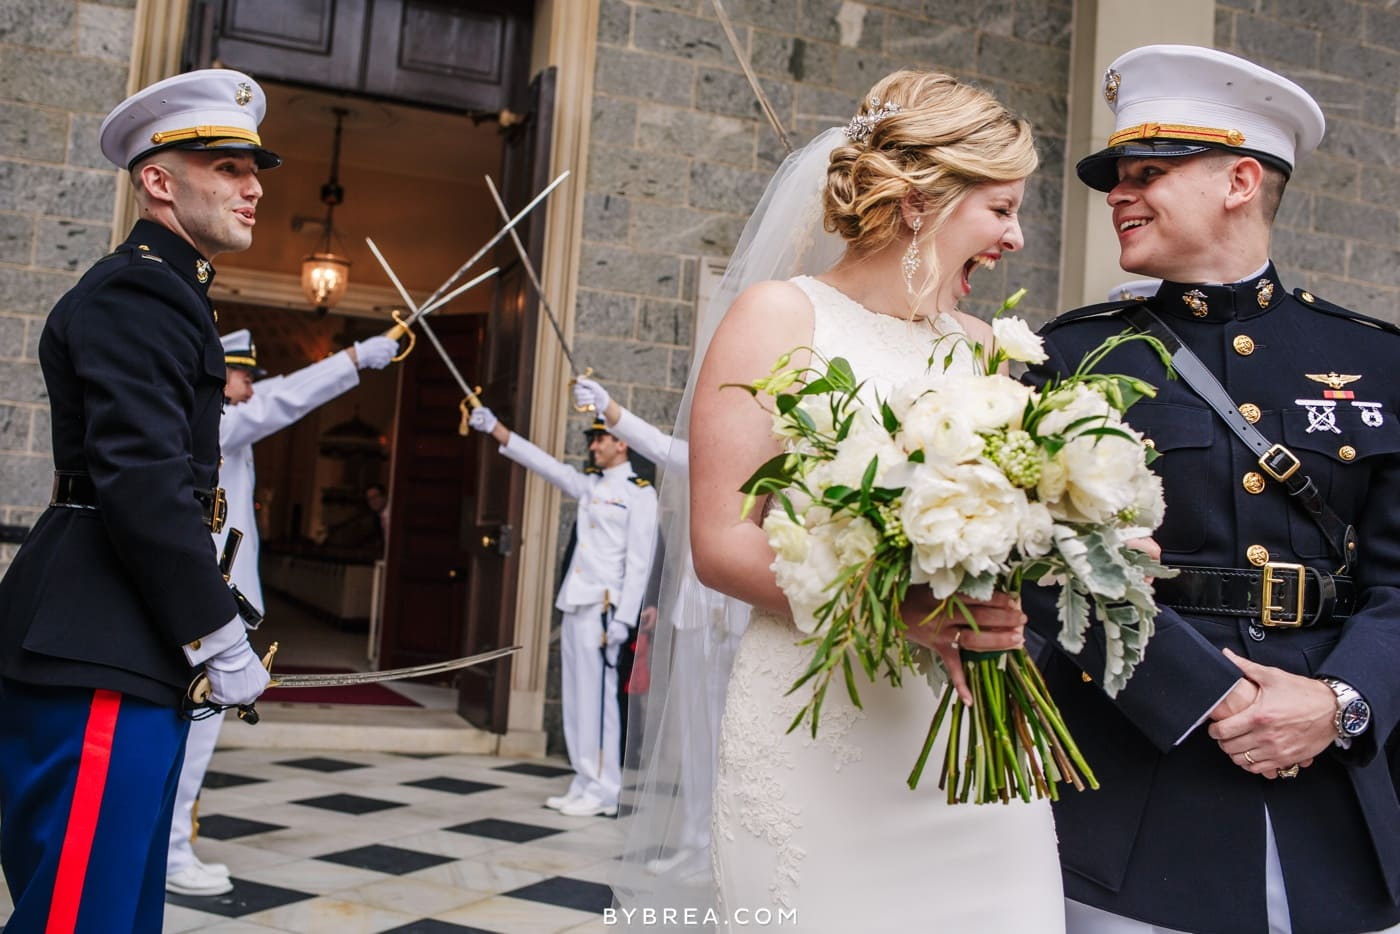 sword arch exit from military wedding at Baltimore basilica